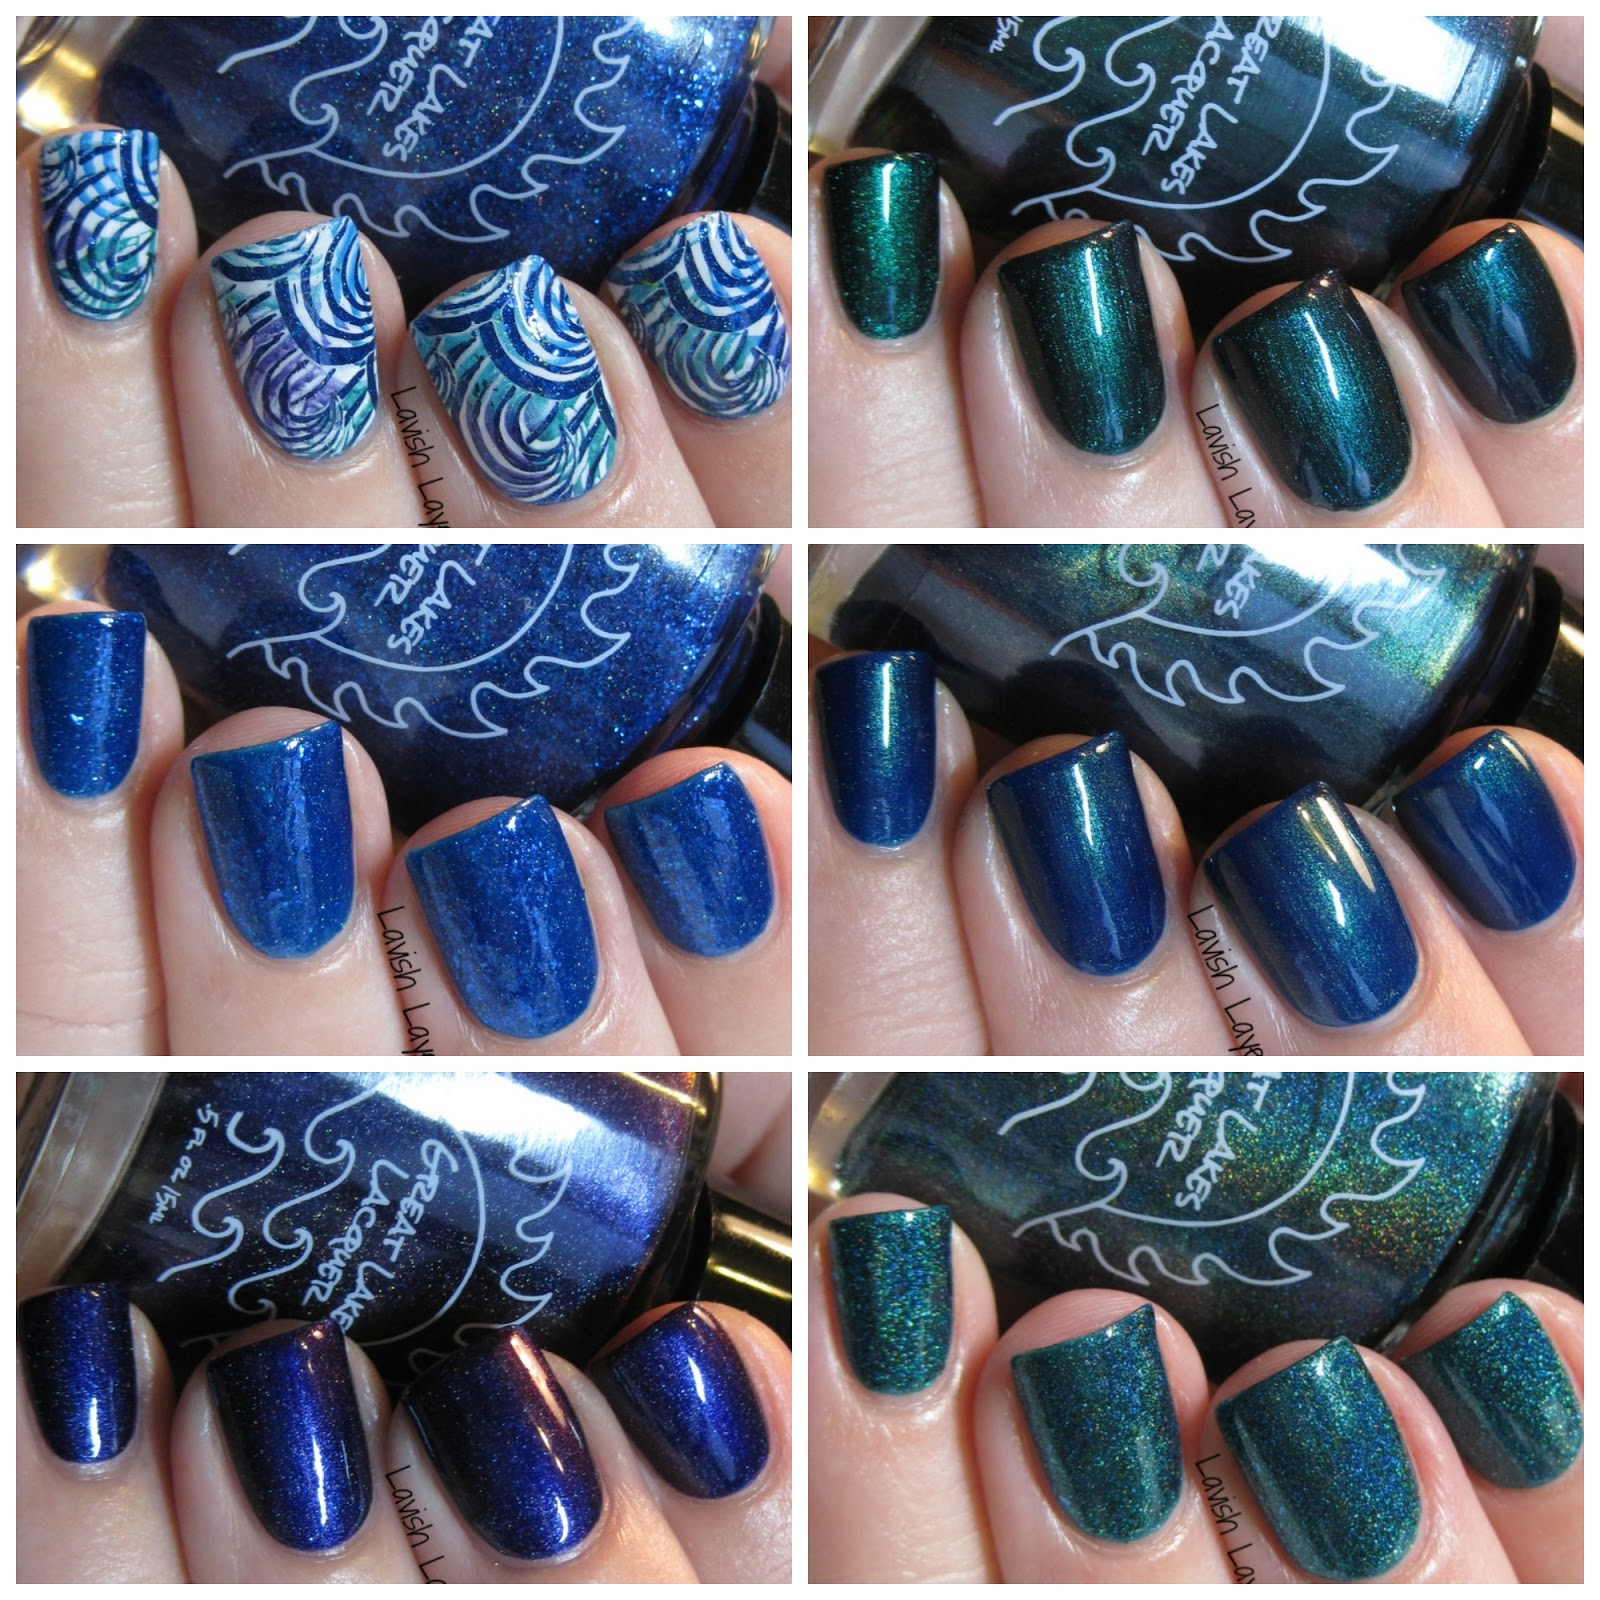 Lavish Layerings: Great Lakes Lacquer The Great Ones Collection